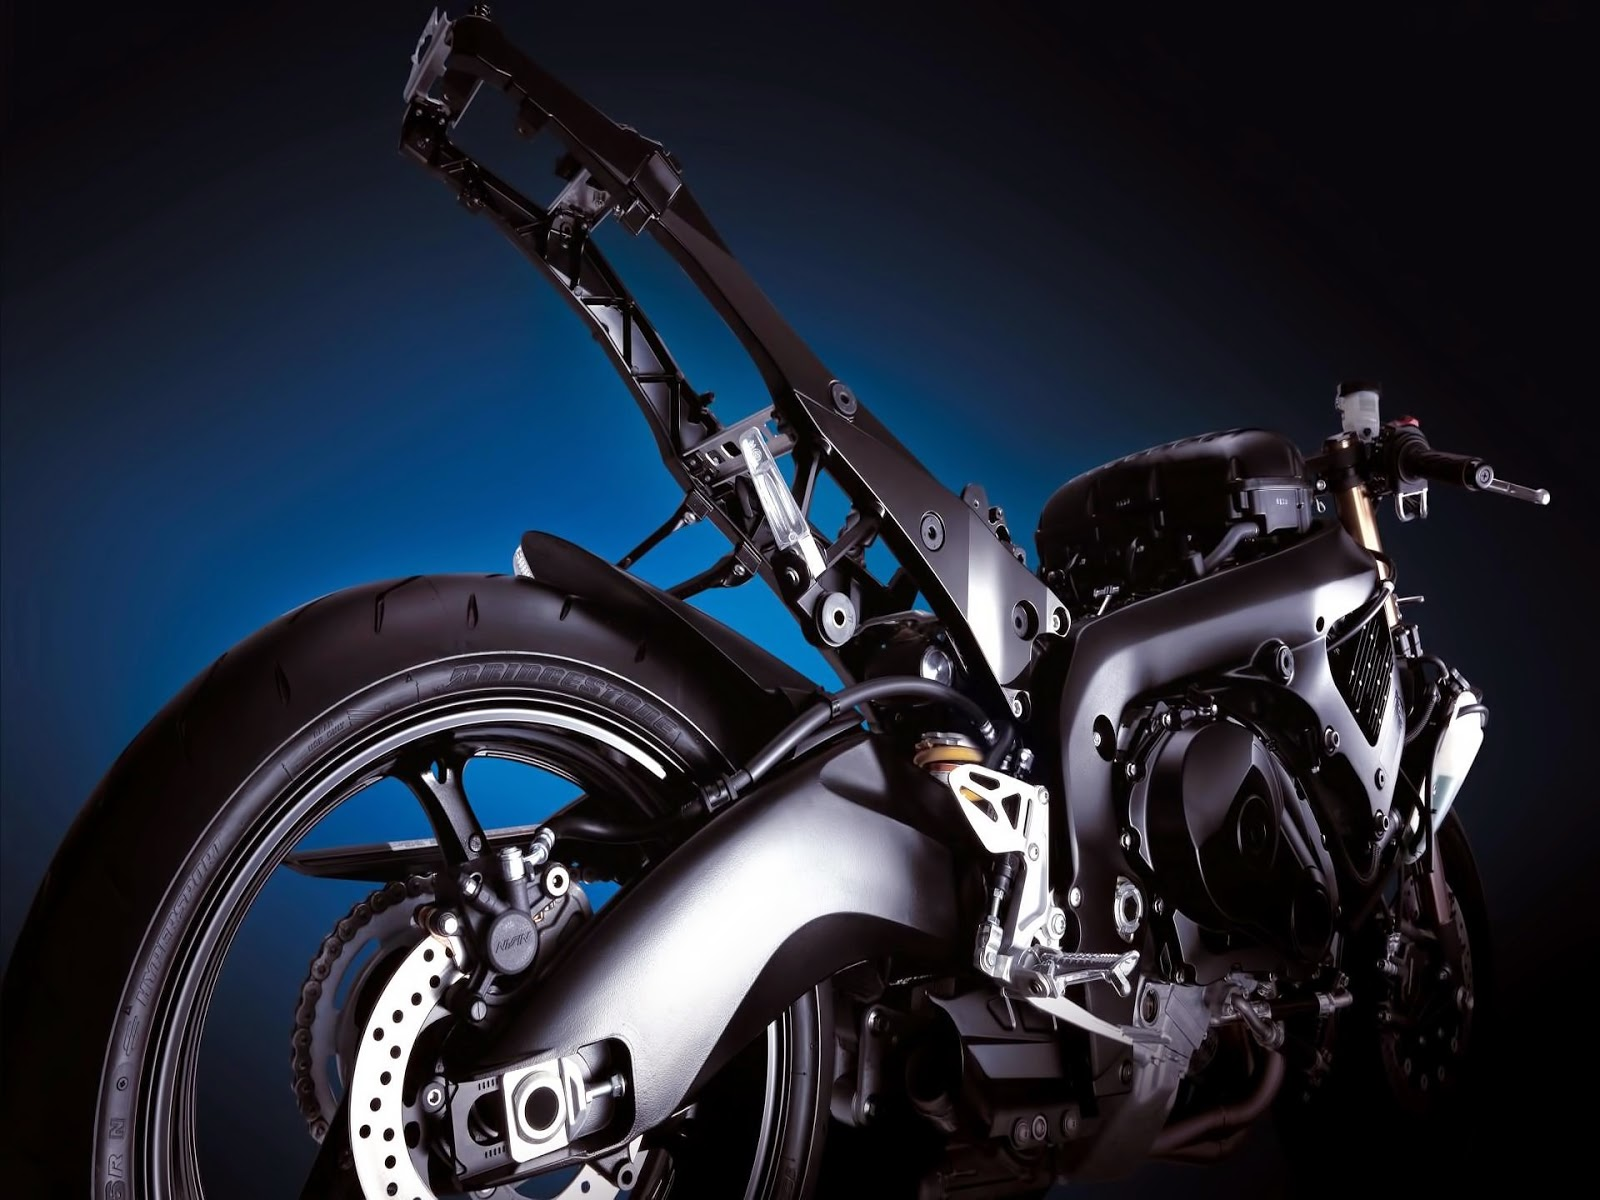 Cute Wallpaper Korean 24 Motorcycle Wallpapers Most Beautiful Places In The